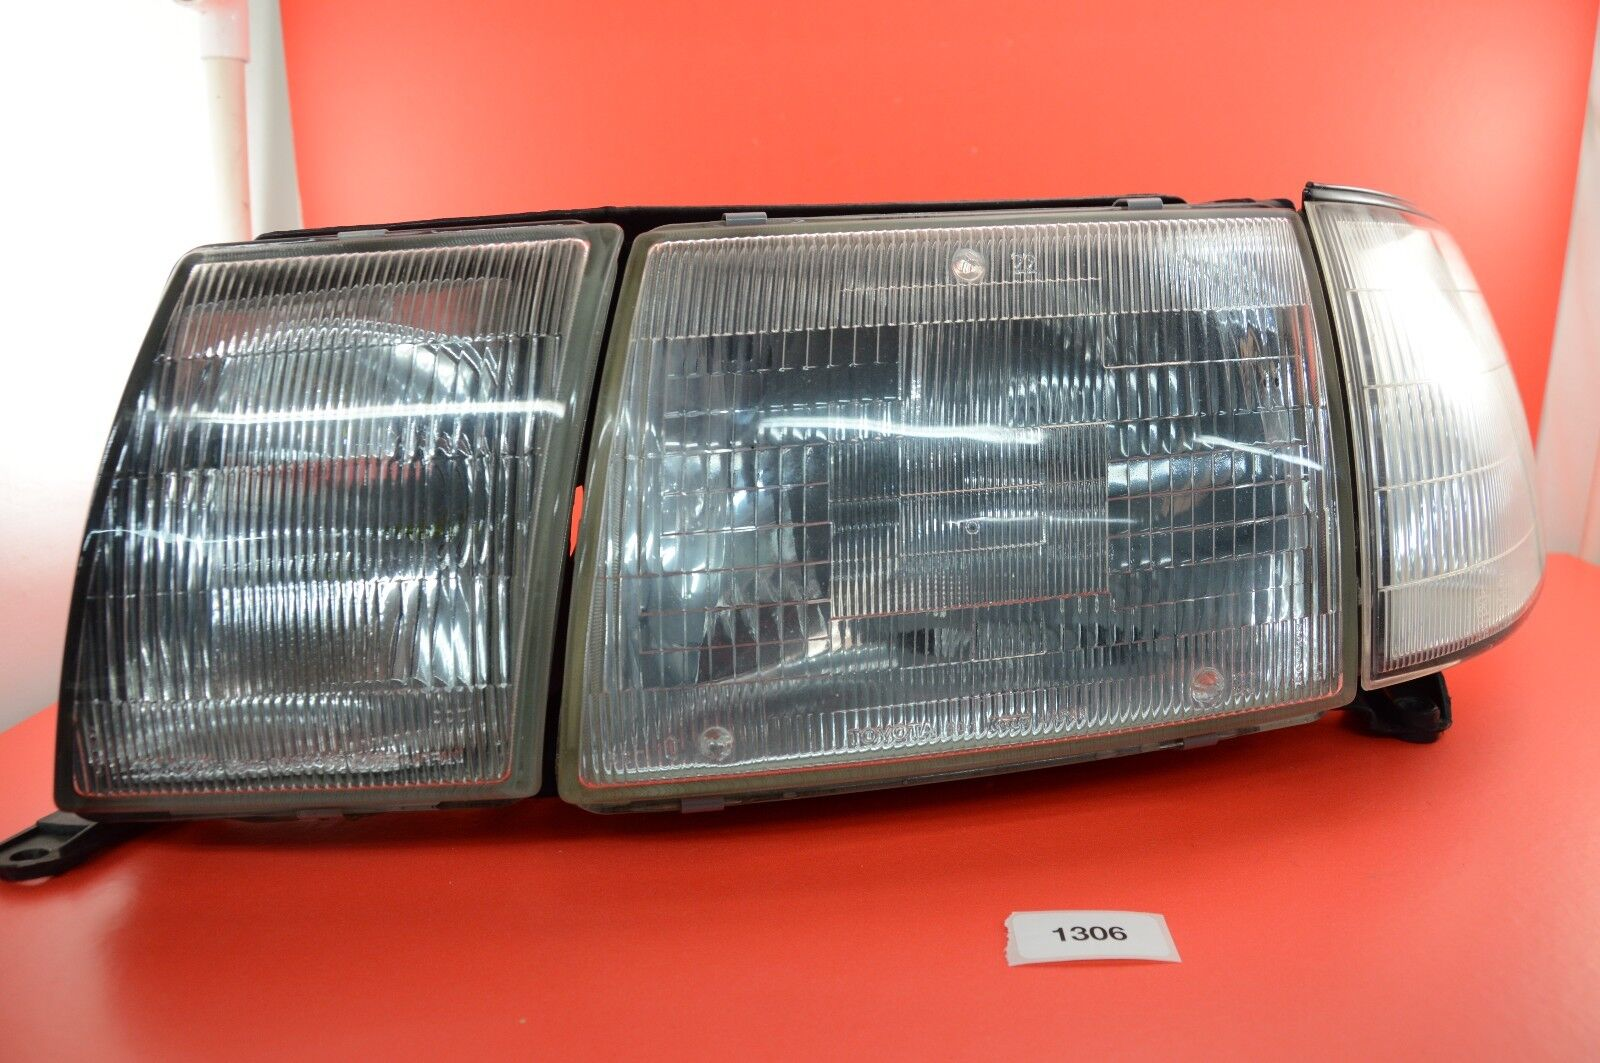 1994 Lexus Ls400 Headlight Diagram Electrical Wiring Diagrams 94 Fuse Box Used 1991 Headlights For Sale 400